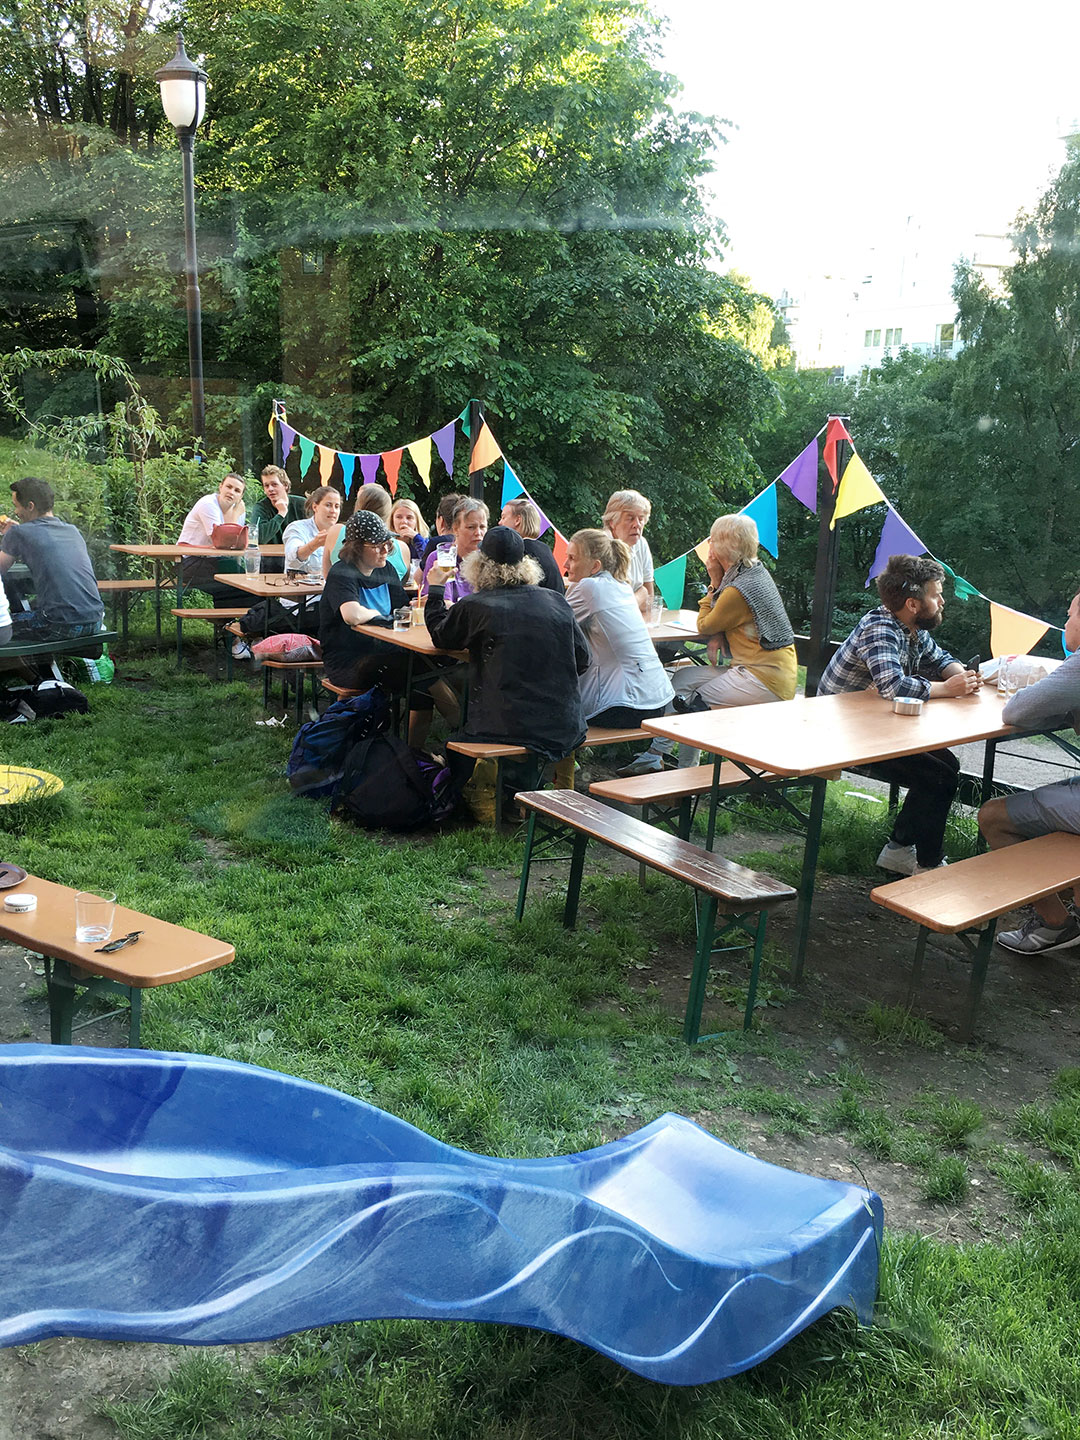 ST. PAULI BIERGARTEN  Slide into the backyard of St. Pauli Biergarten to have a few cold beers and light bar foods. This hipster joint is a super chill and fun hangout spot. FB Page:  Here